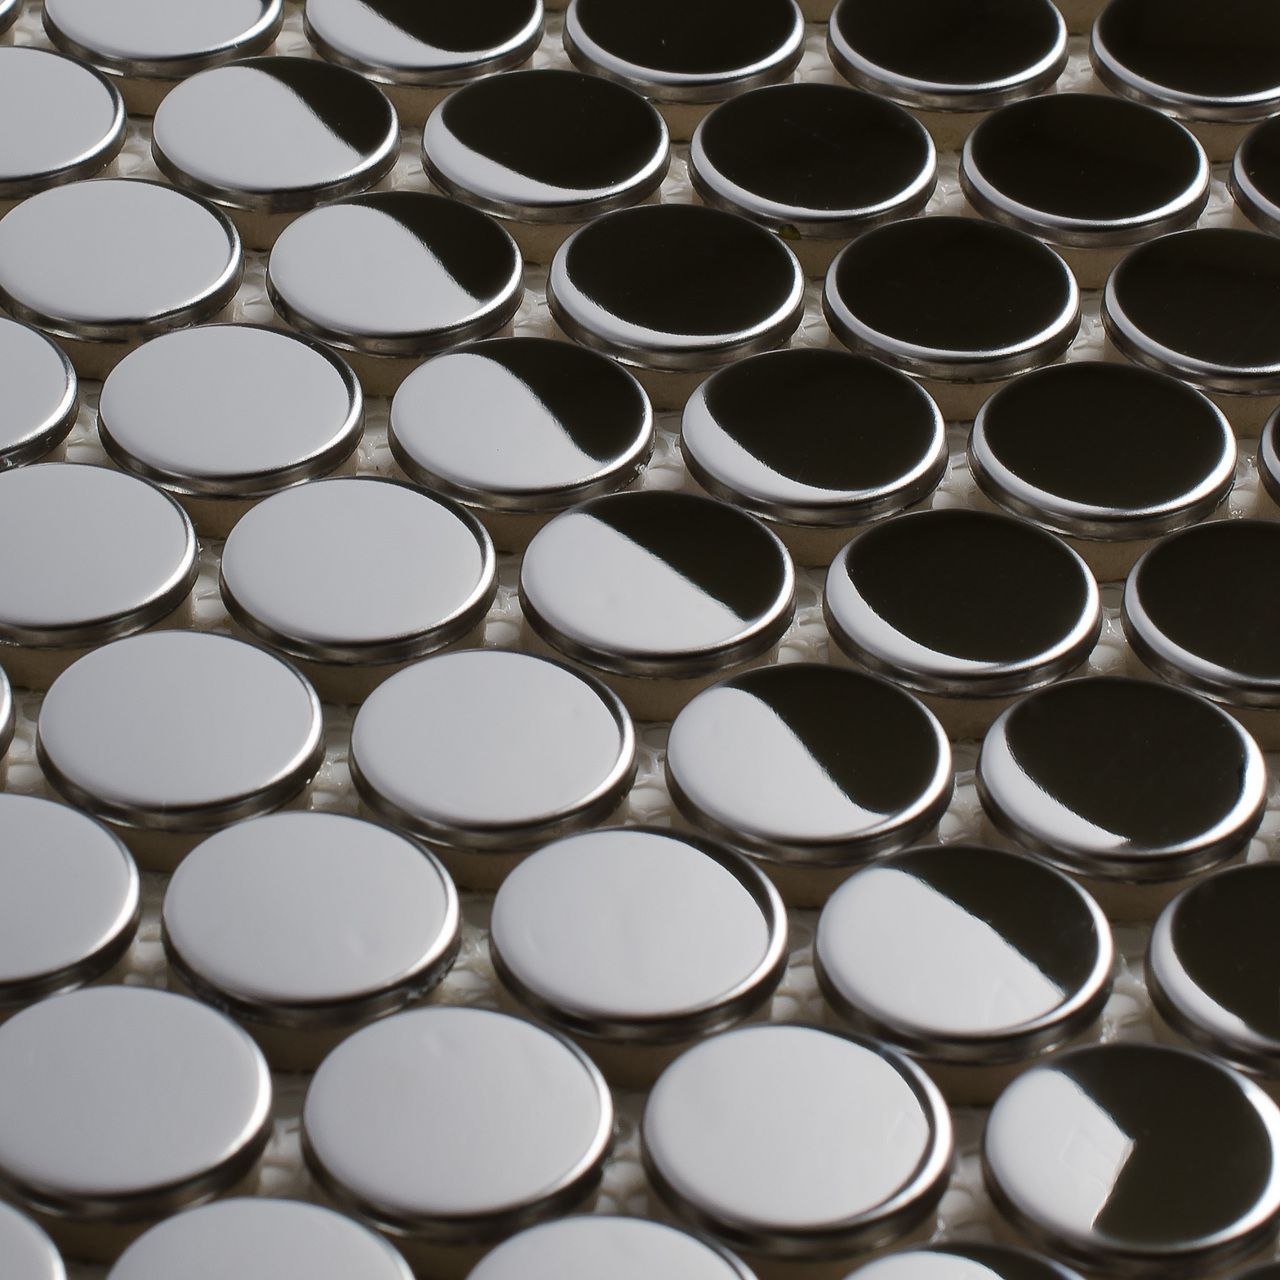 Stainless Steel Tile Penny Round Silver | Penny tile ...